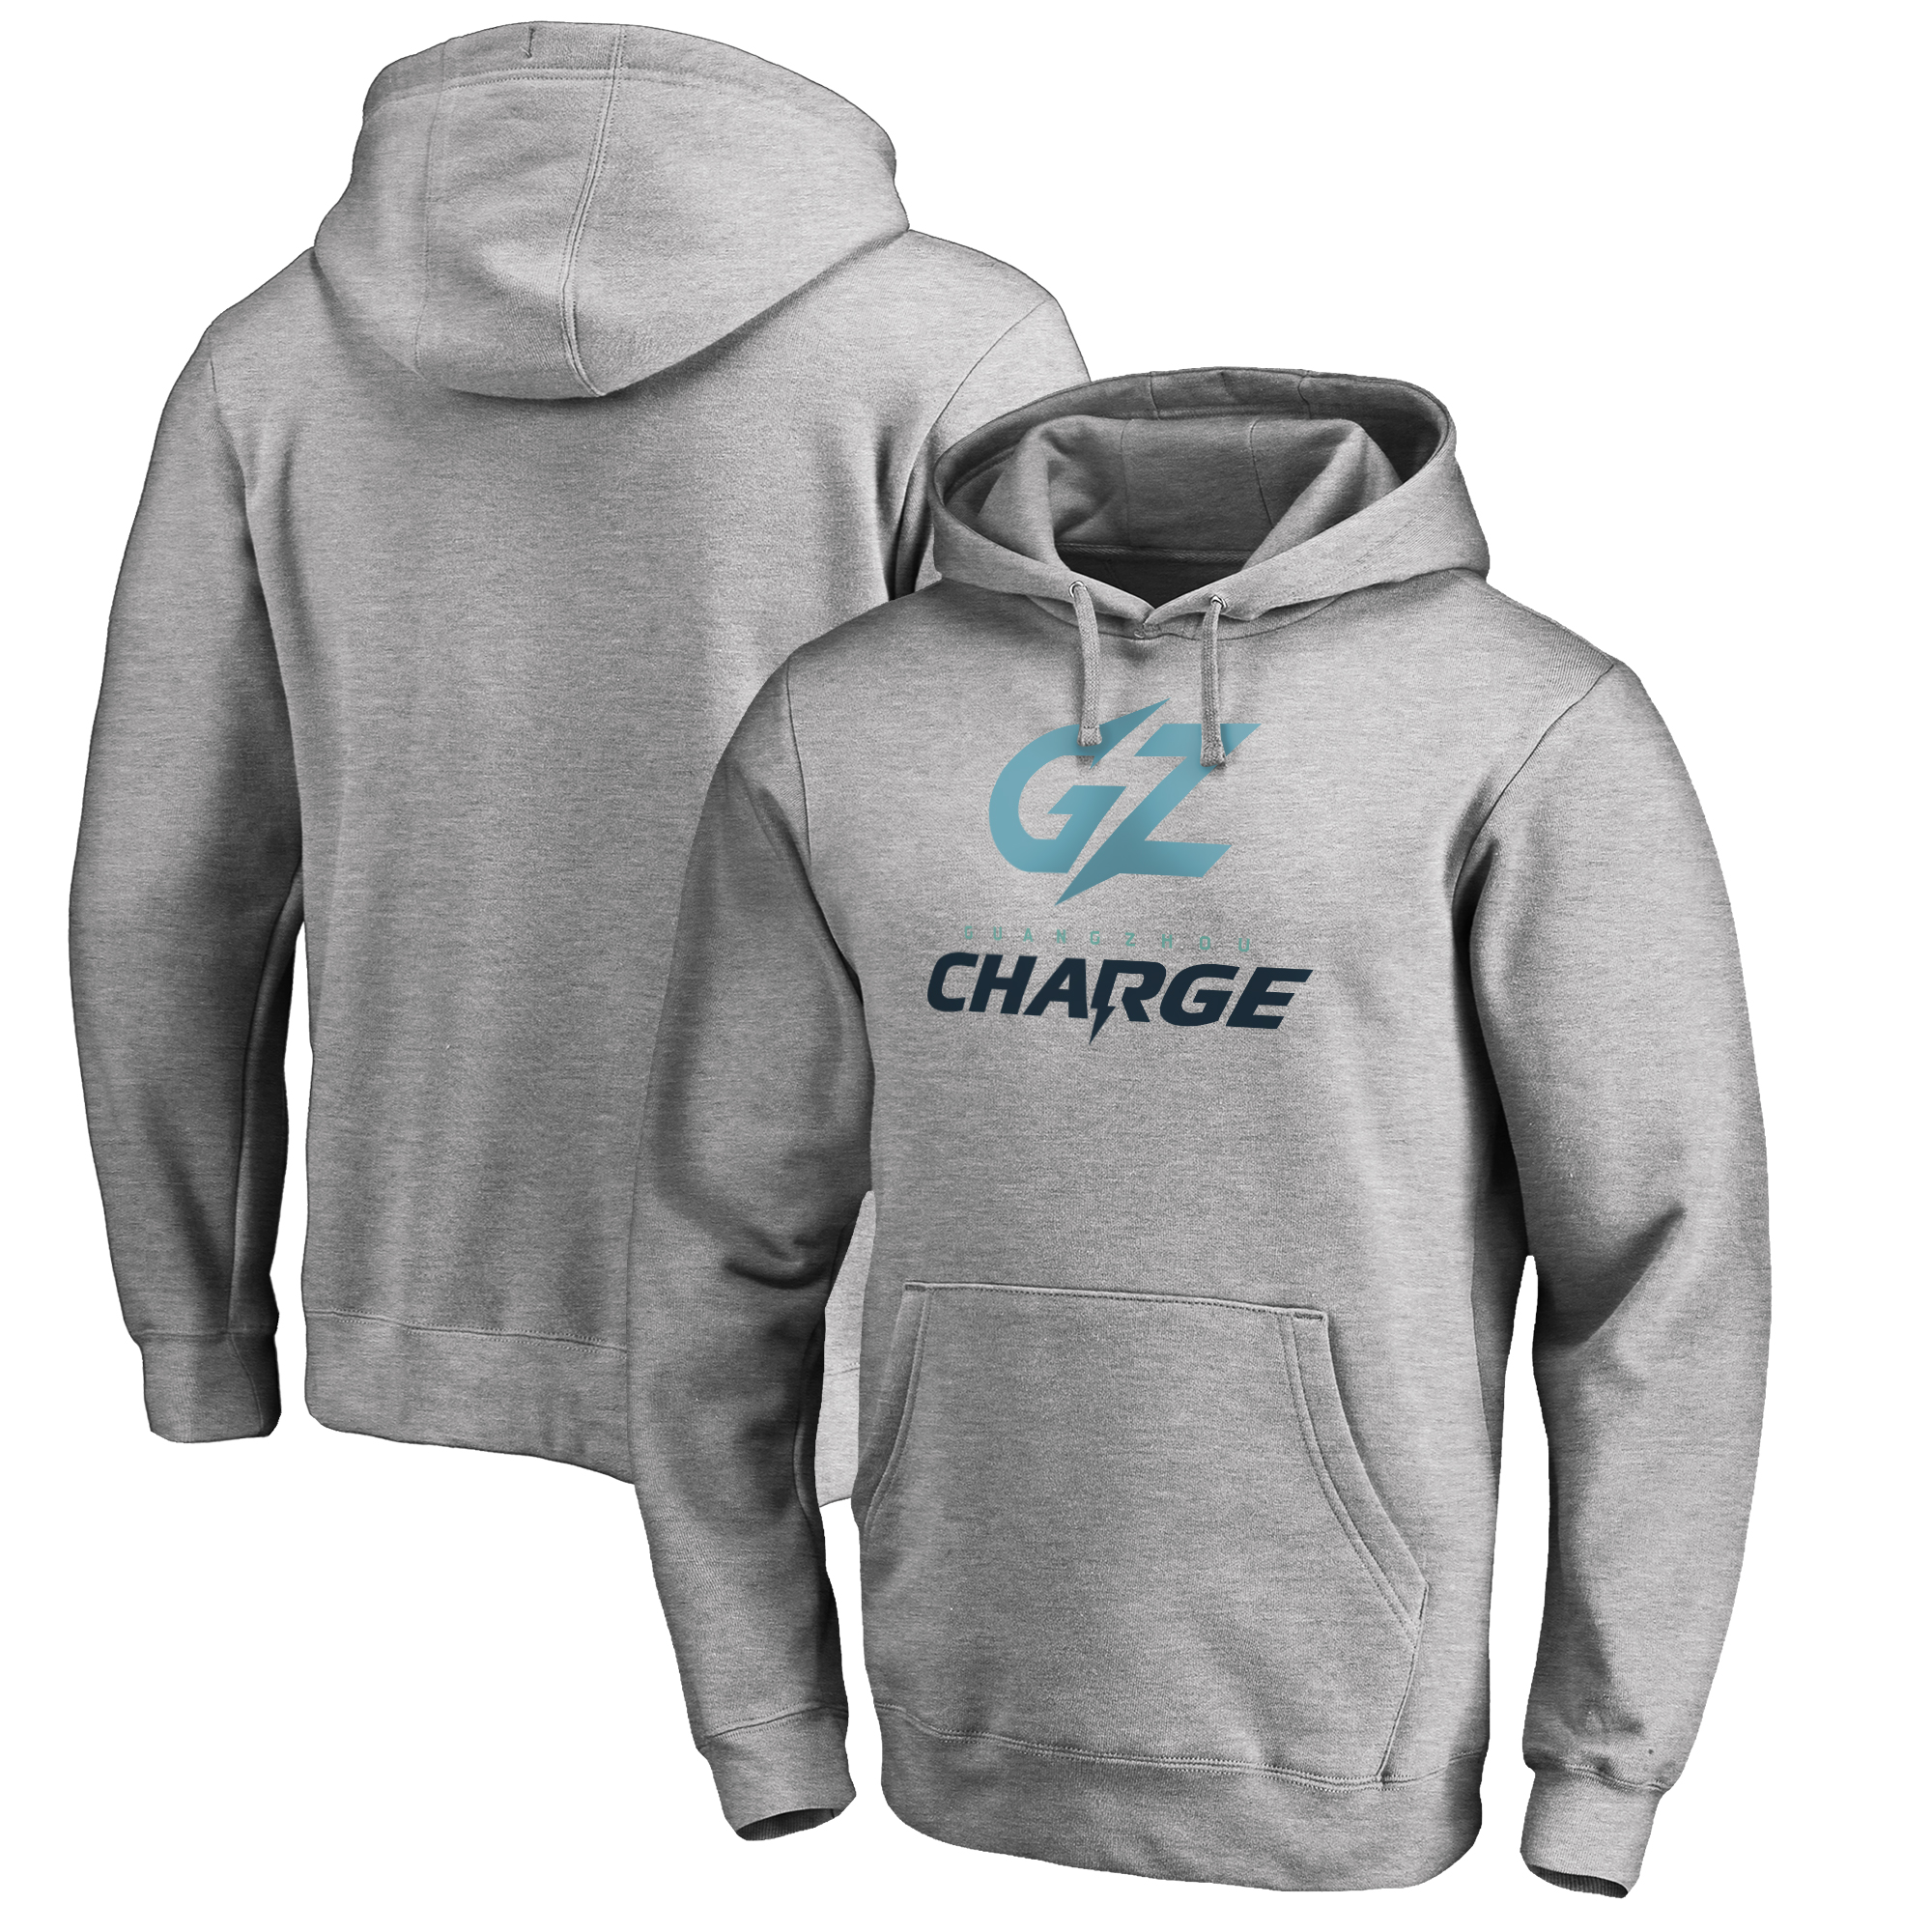 Guangzhou Charge Fanatics Branded Team Identity Pullover Hoodie - Heather Gray